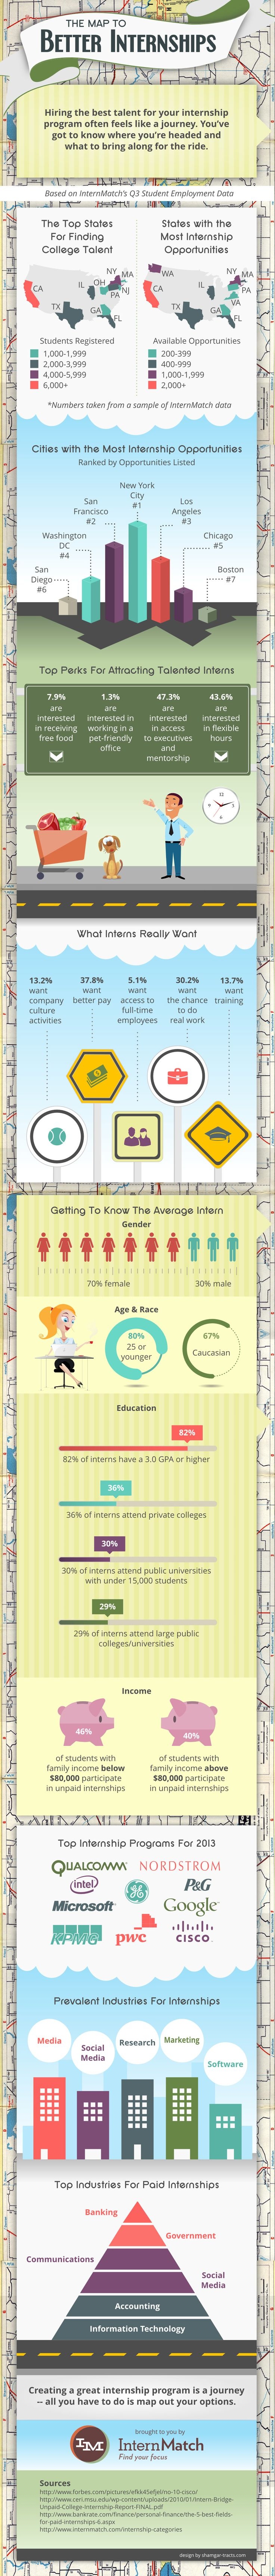 A Guide To Better Internships INFOGRAPHIC